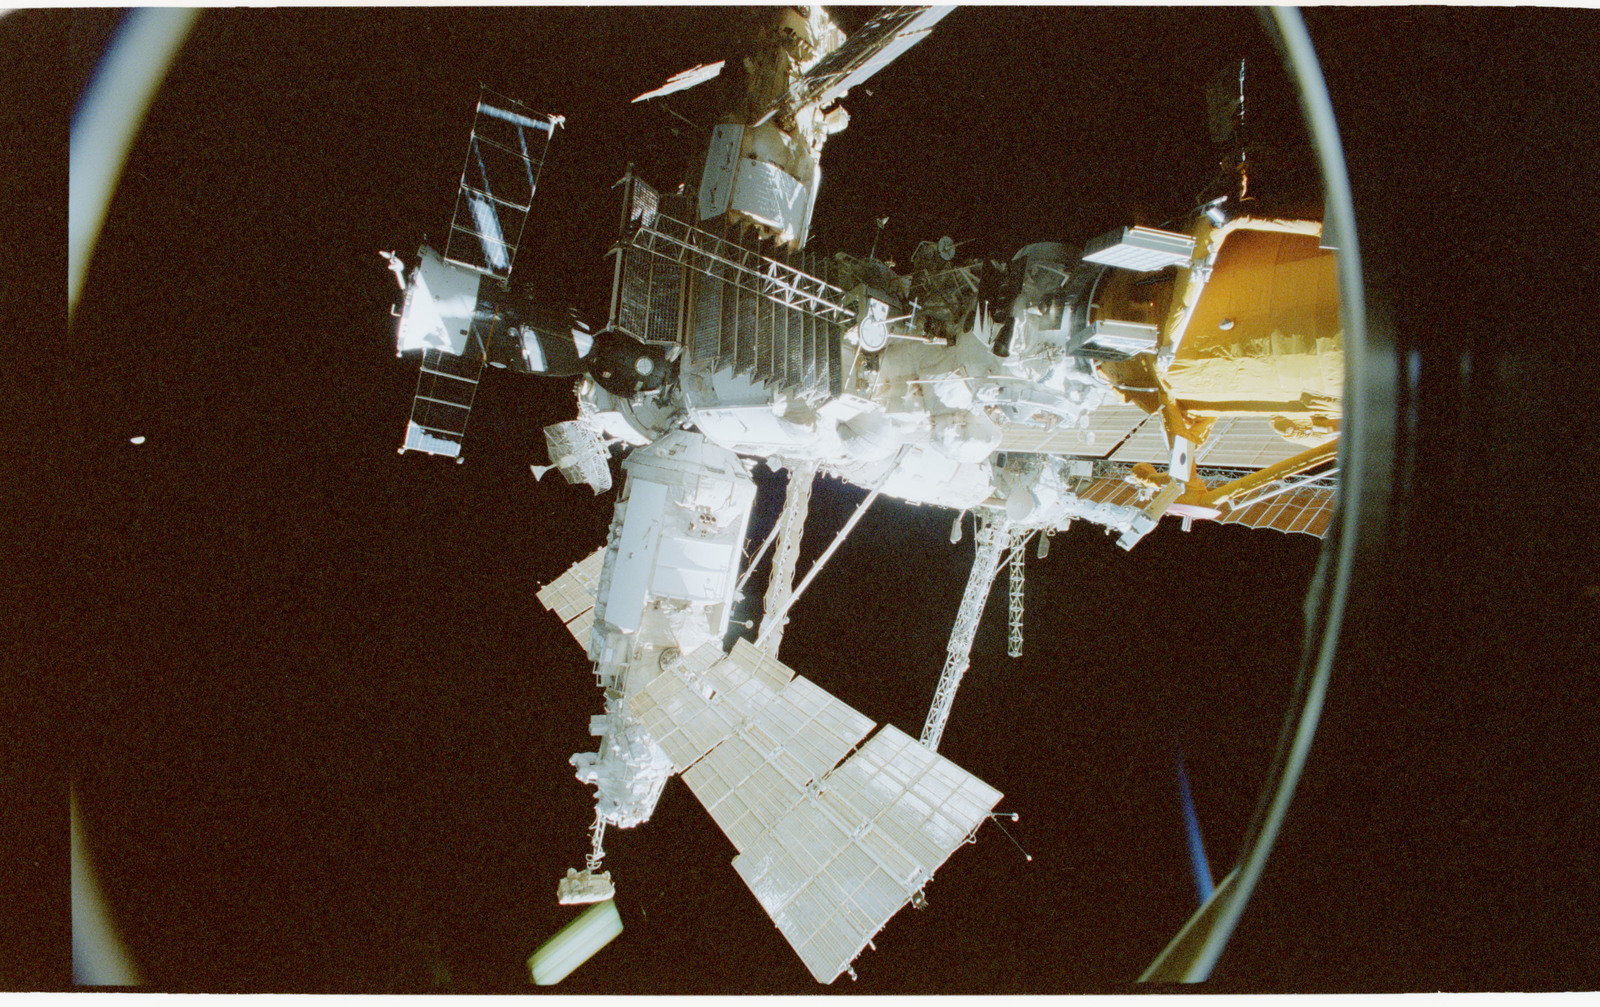 STS079-347-006 - STS-079 - Views of the Mir space station modules